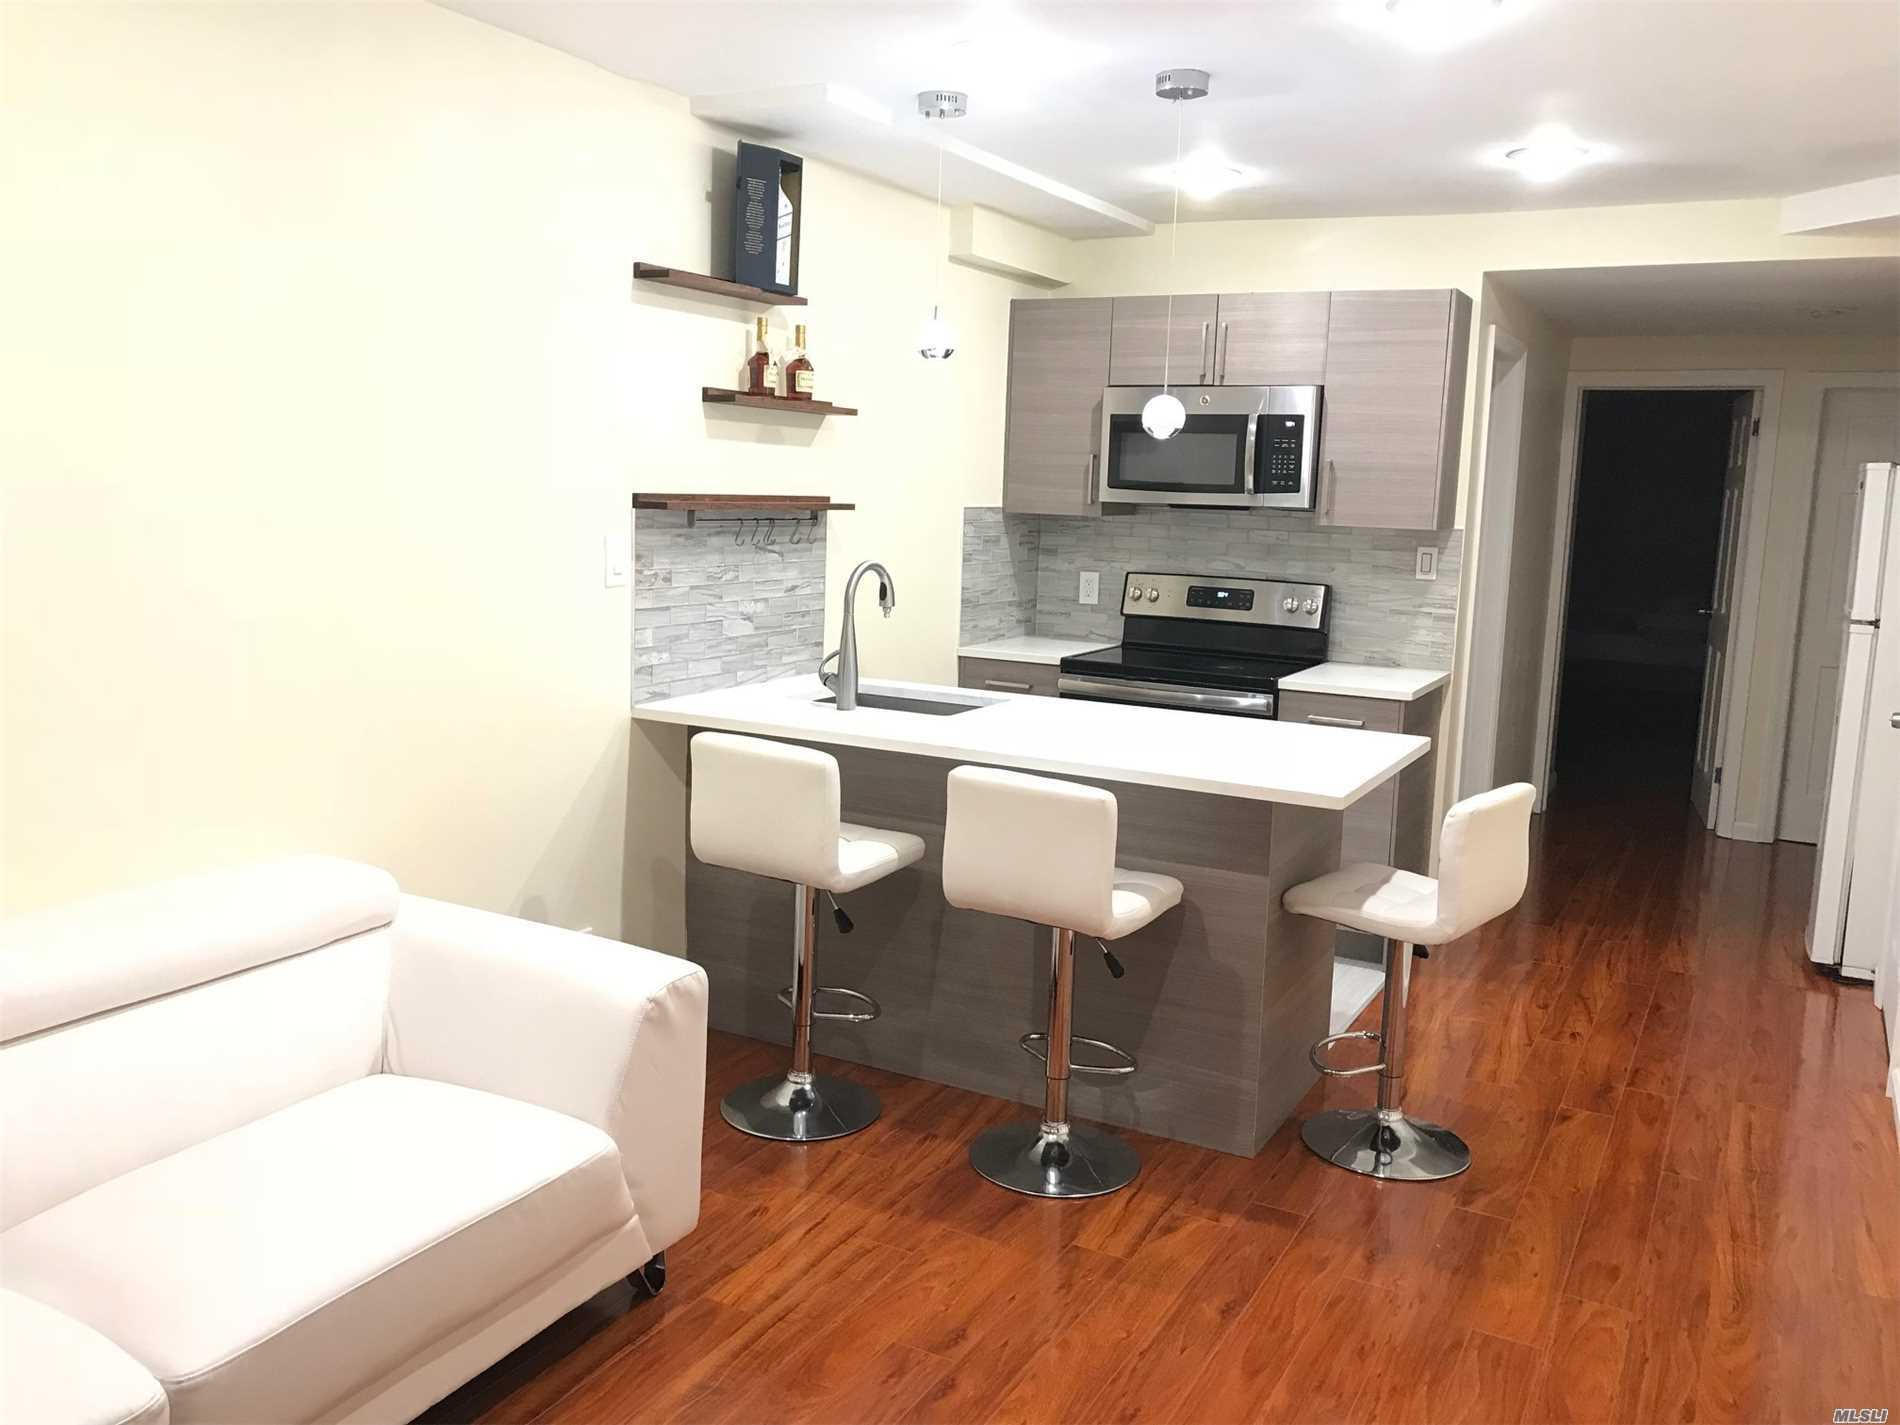 First Floor Unit In A Multiple Family Building. This Rental Unit Has Two Bedrooms, One Full Bath, New Open Style Kitchen With Living Room, And New Floors. There Is A Direct Access To Backyard. Only 2 Blocks From Subway Station #7 Train, 15 Min To Manhattan, Close Proximity To Supermarket, Park, Library, Laundry, And Highway.